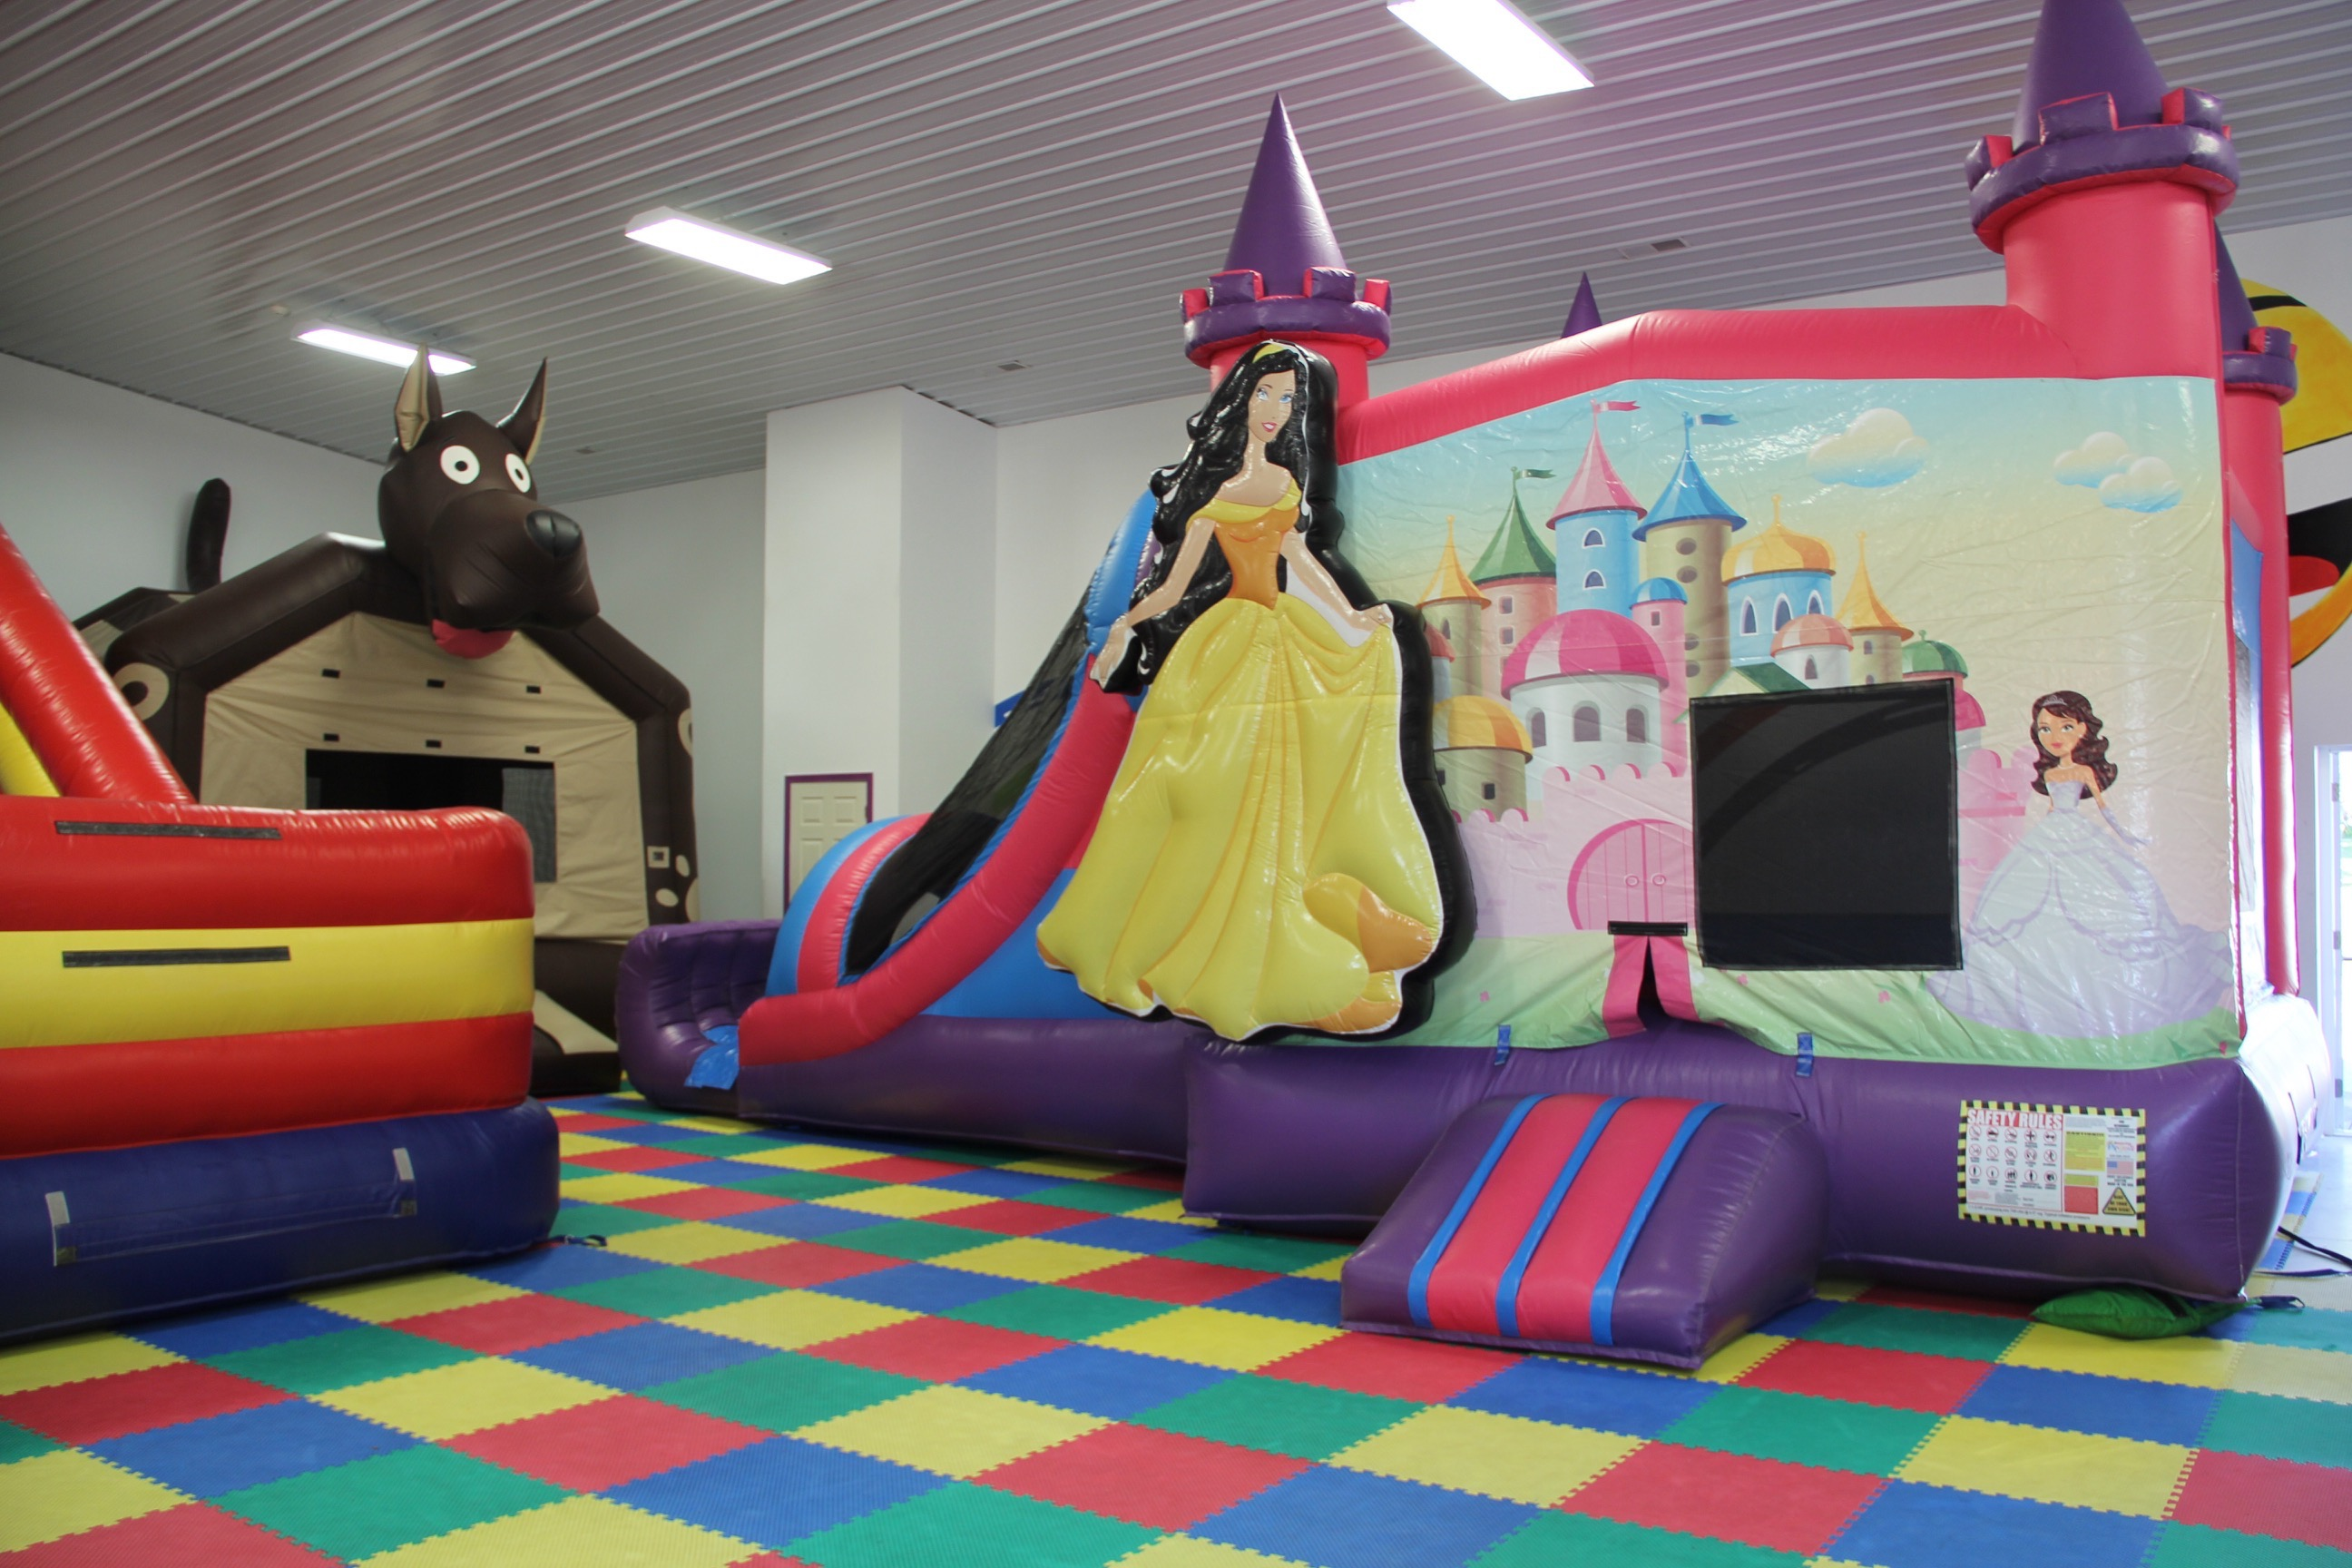 princess-theme-bounce-house-new-castle-indiana